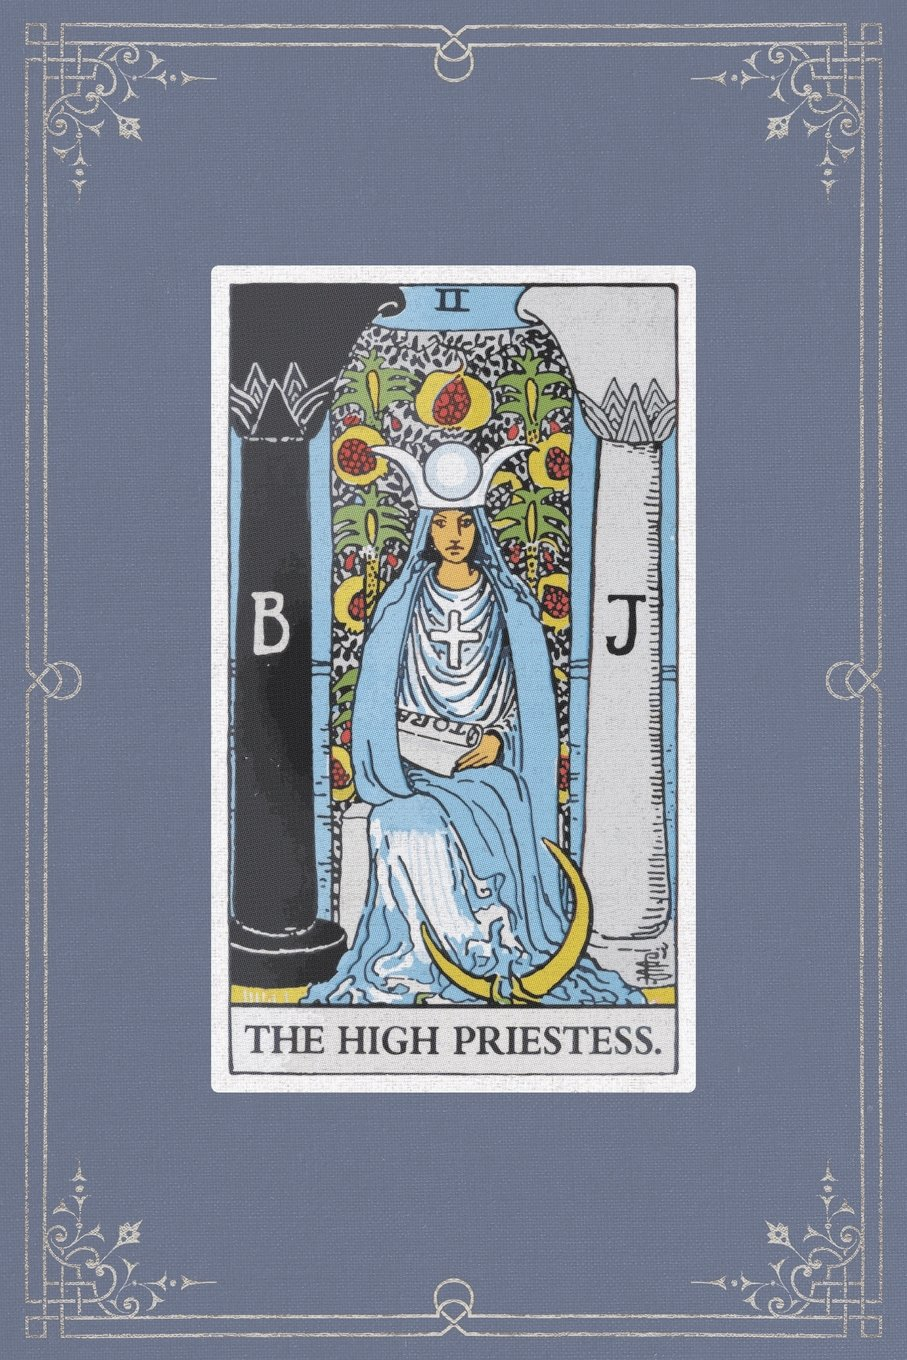 Read Online The High Priestess: 120 Blank Lined Pages, 6 X 9 College Ruled Notebook, The High Priestess Tarot Card - Antique Vintage Style Journal, Diary, ... Vintage Style - Tarot Card Notebooks) ebook